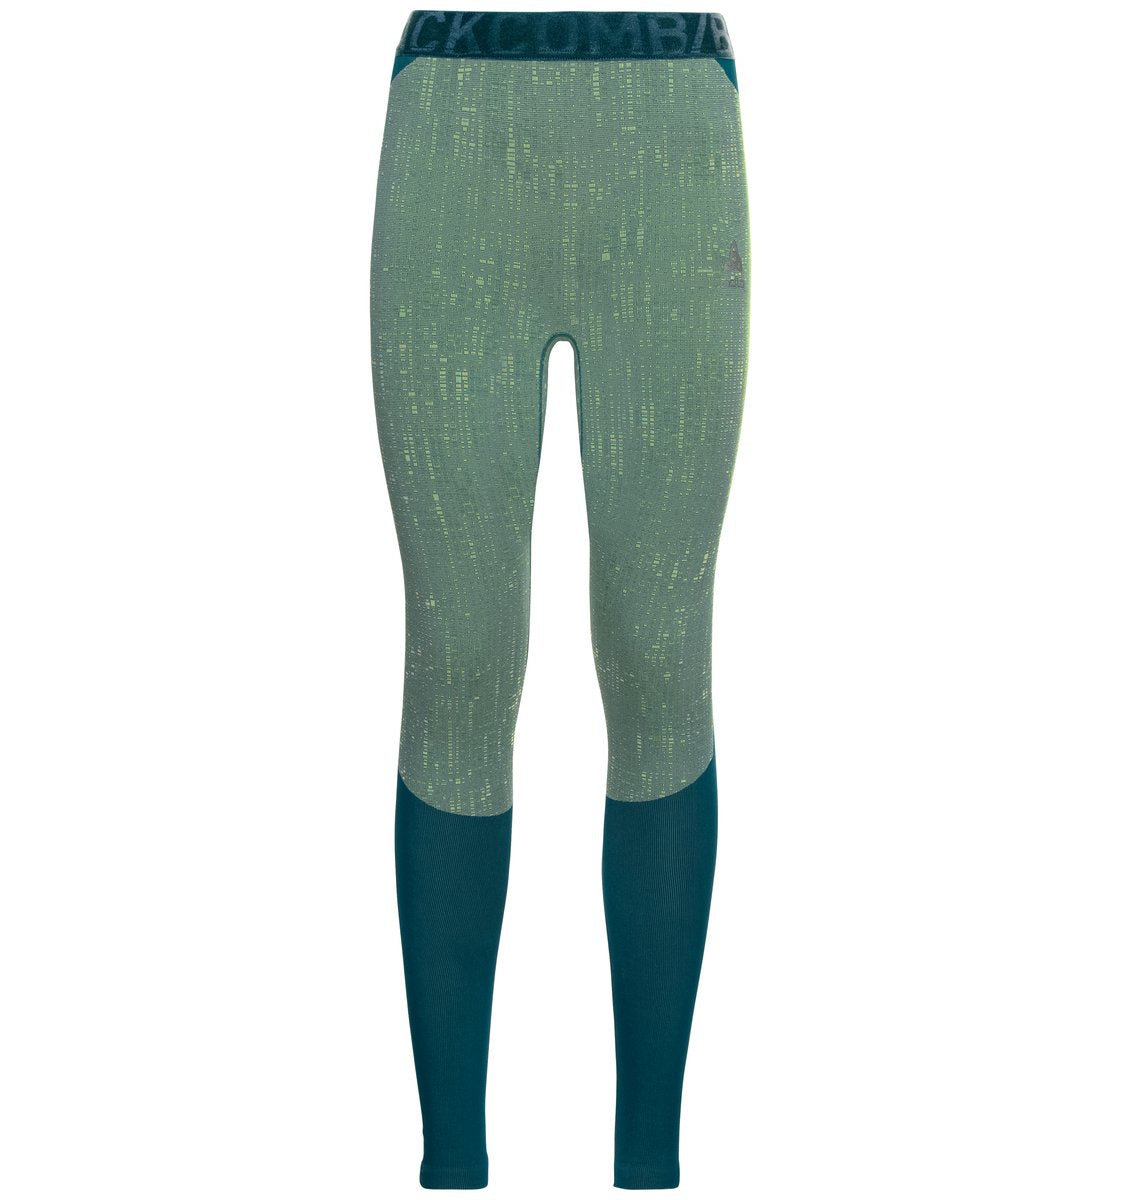 Odlo Women's BLACKCOMB Baselayer Bottoms